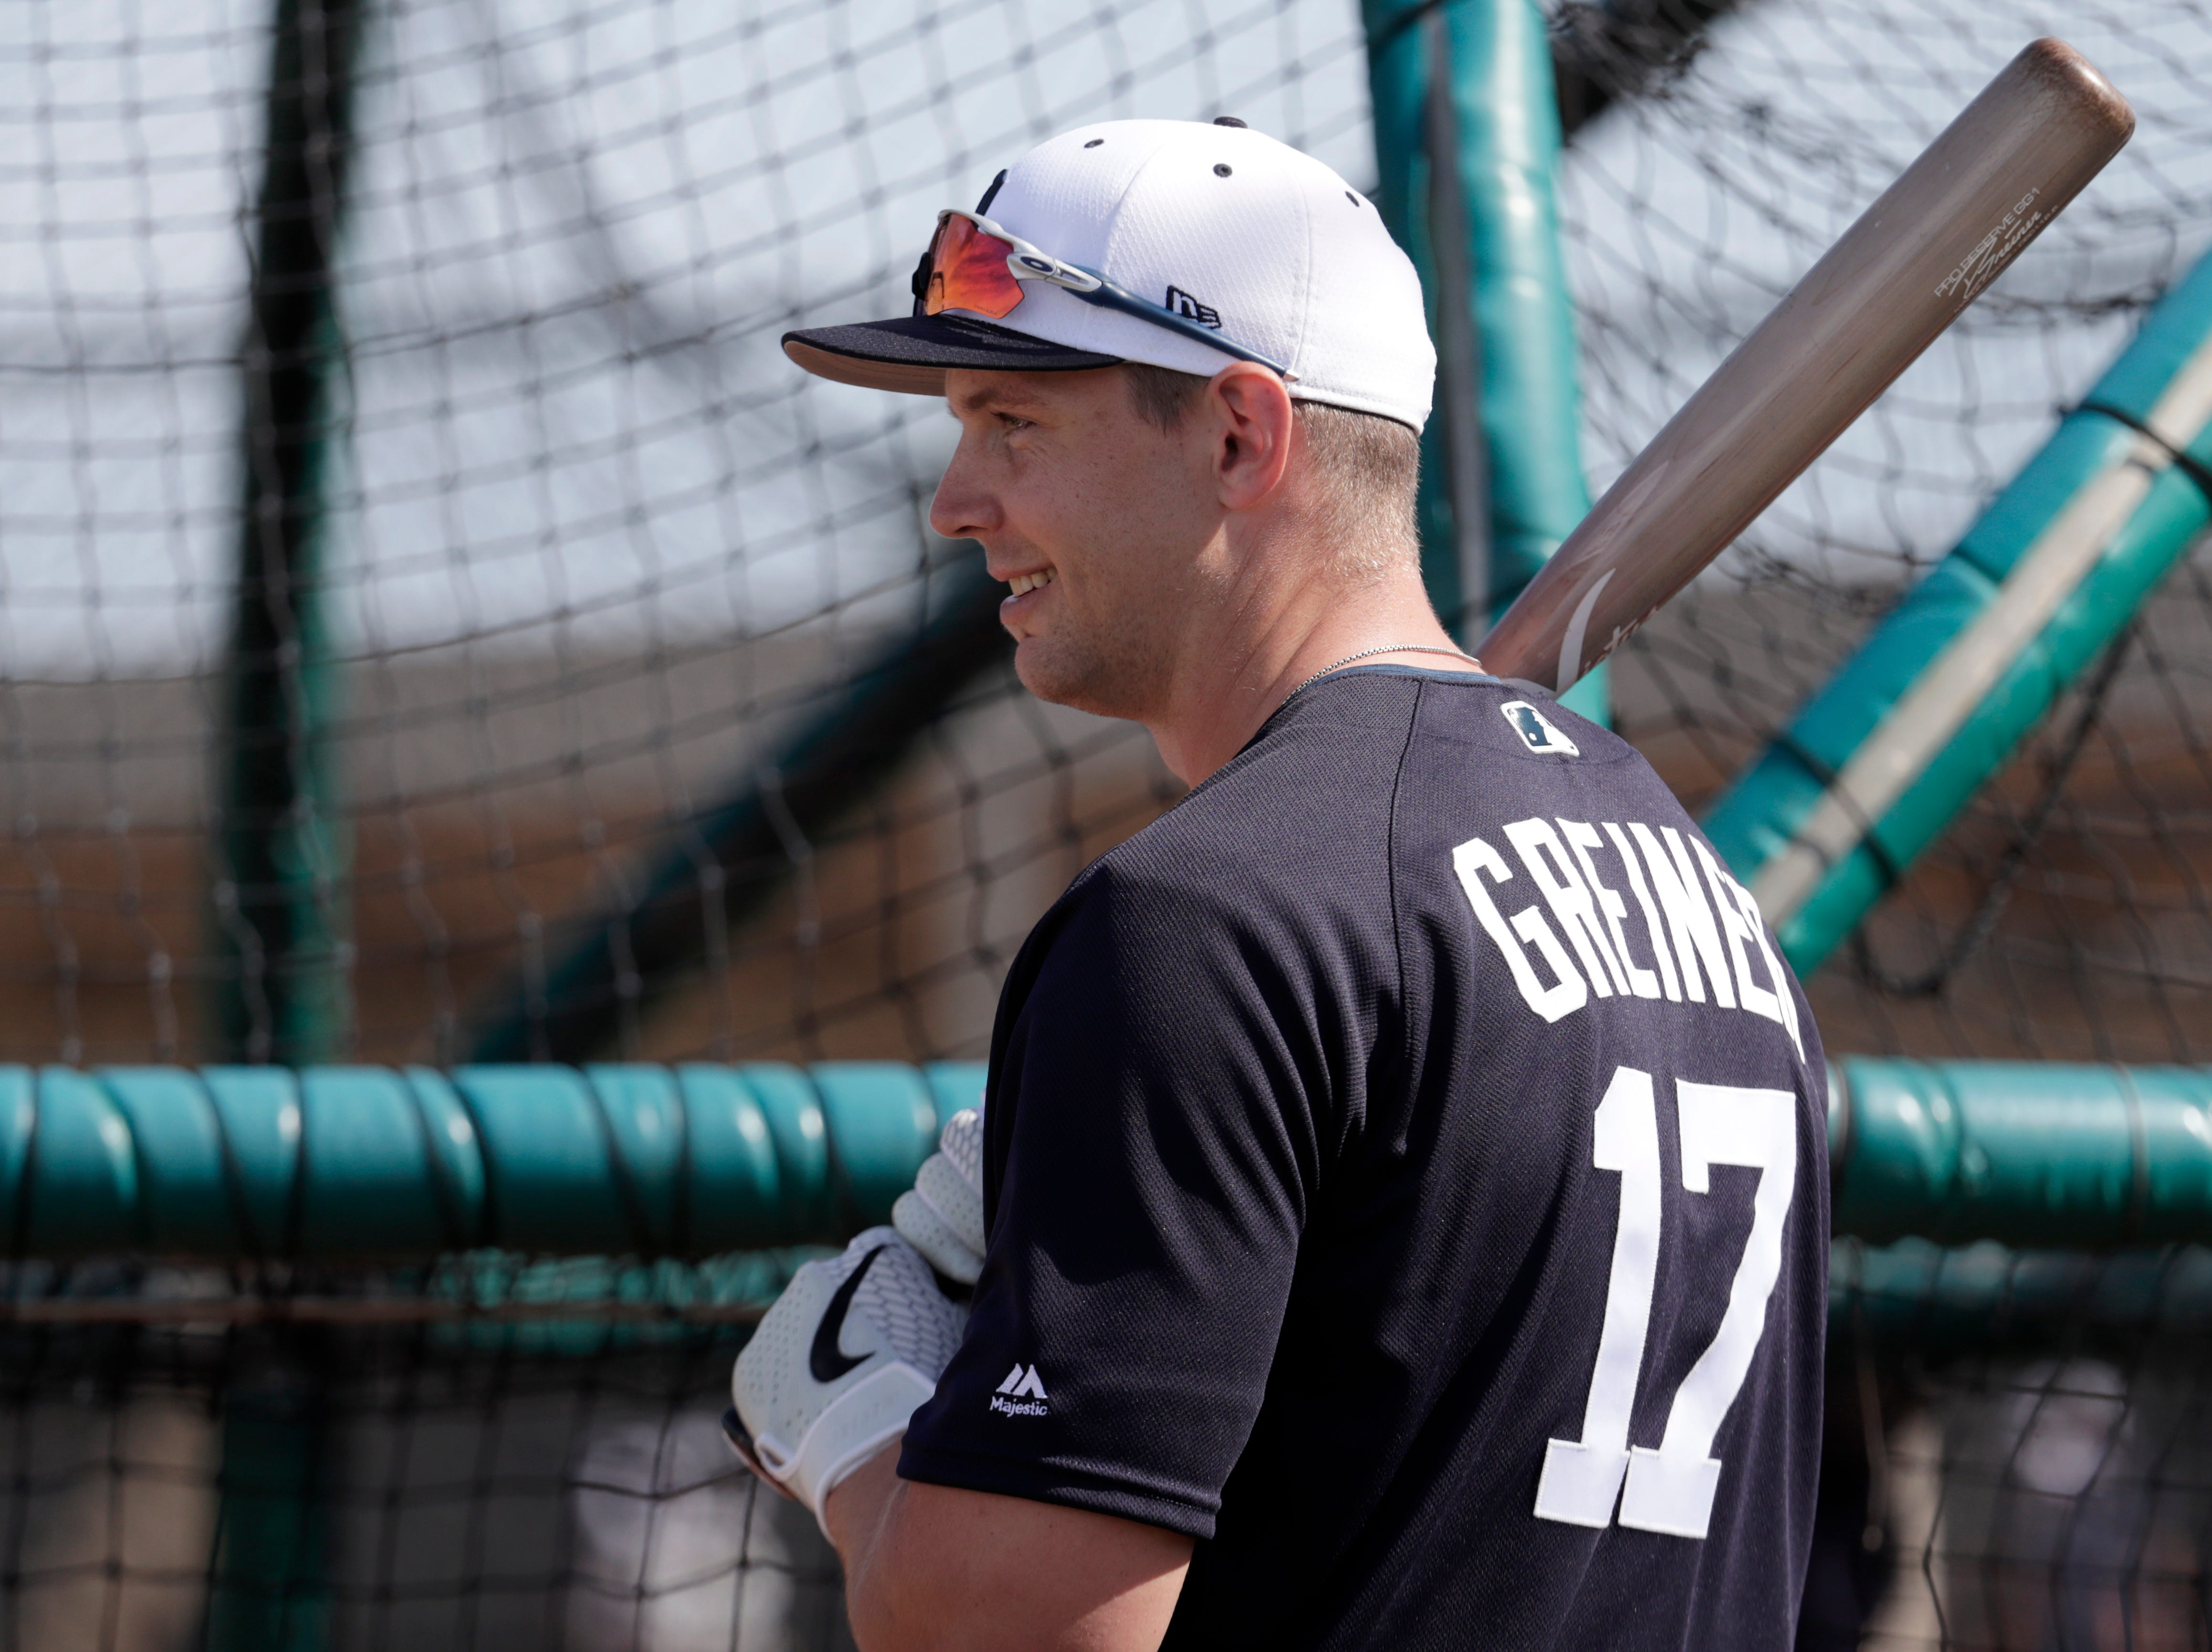 Detroit Tigers catcher Grayson Greiner (17) waits to bat at the Detroit Tigers spring training baseball facility, Friday, Feb. 15, 2019, in Lakeland, Fla.